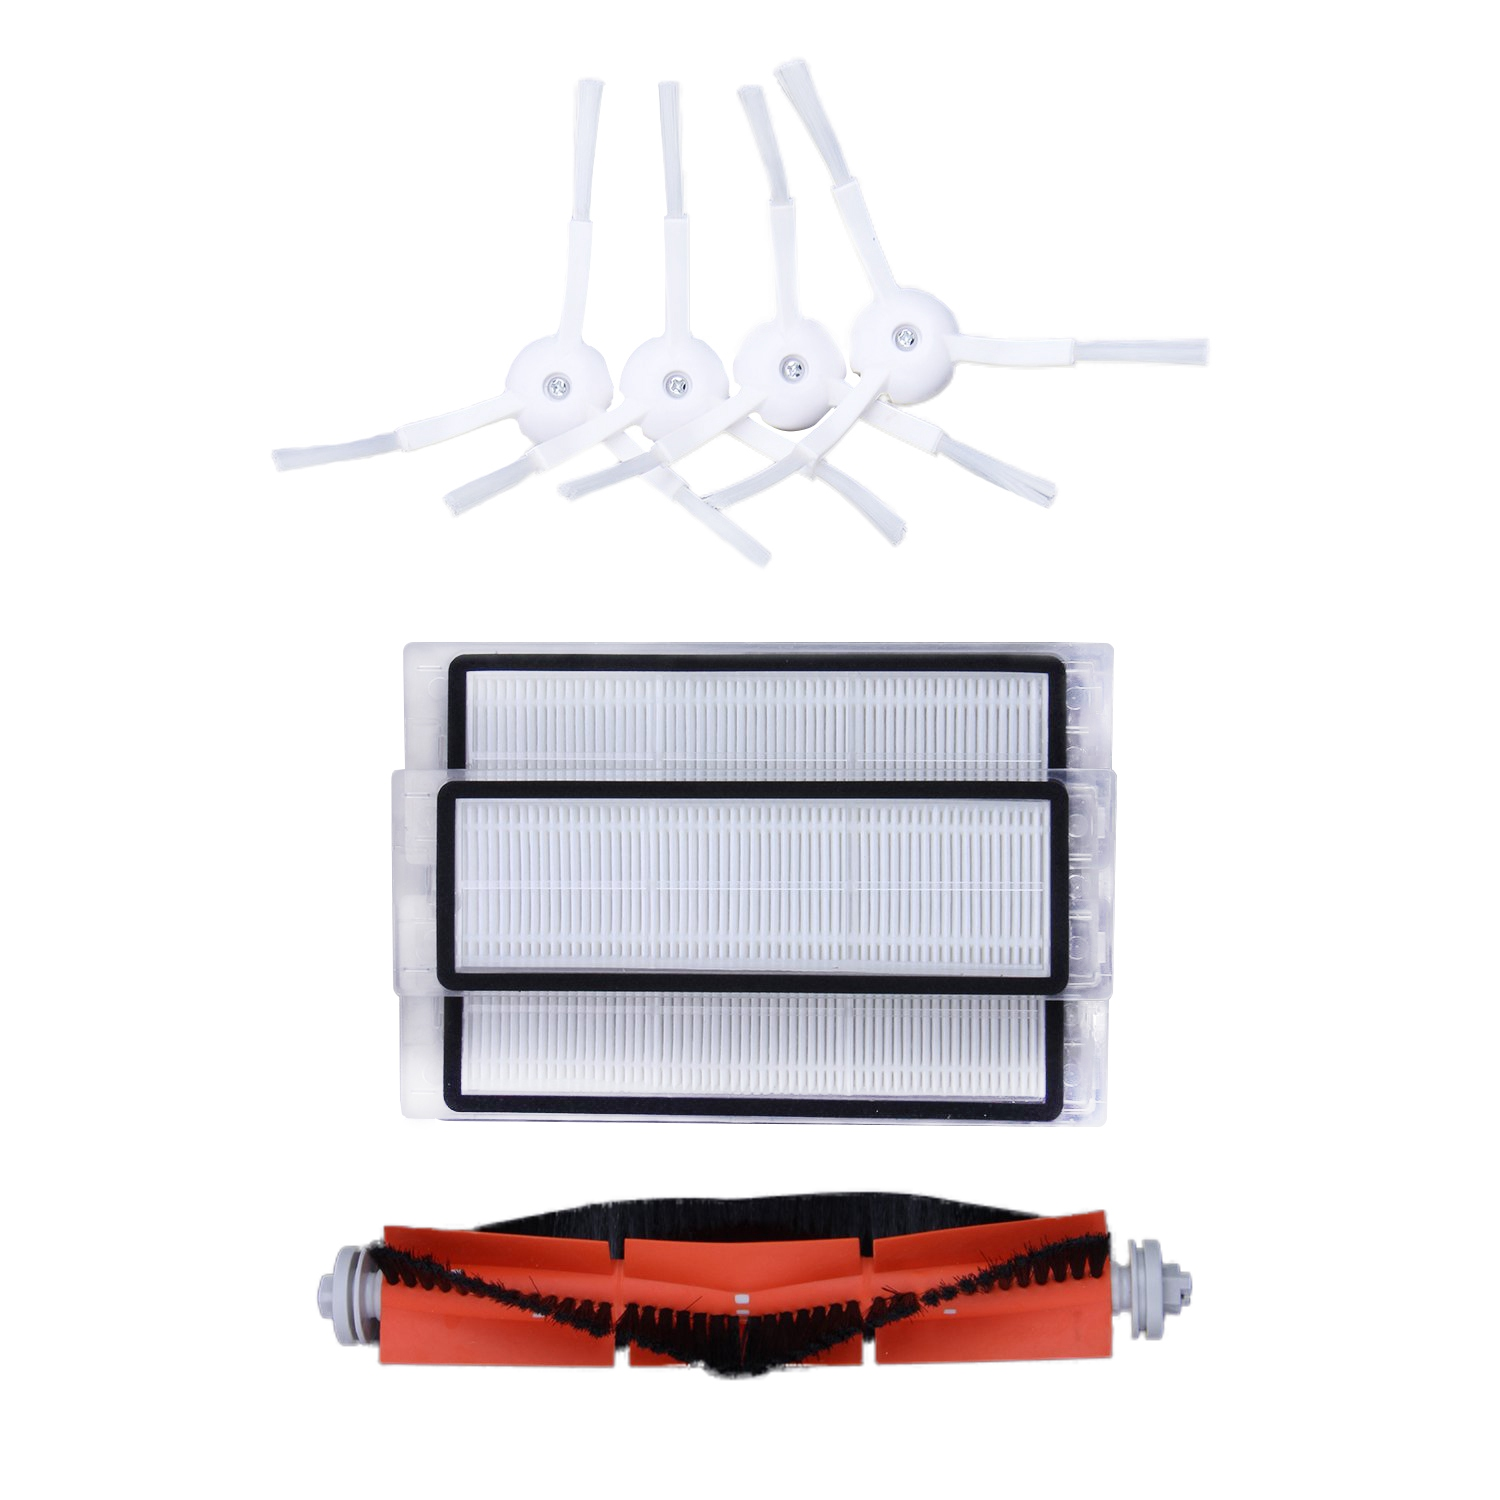 WHYY-1set 3PCS hepa filter+4PCS side brush+1PCS main brush Suitable for Xiaomi Mi Robot Vacuum Cleaner parts accessoriesWHYY-1set 3PCS hepa filter+4PCS side brush+1PCS main brush Suitable for Xiaomi Mi Robot Vacuum Cleaner parts accessories